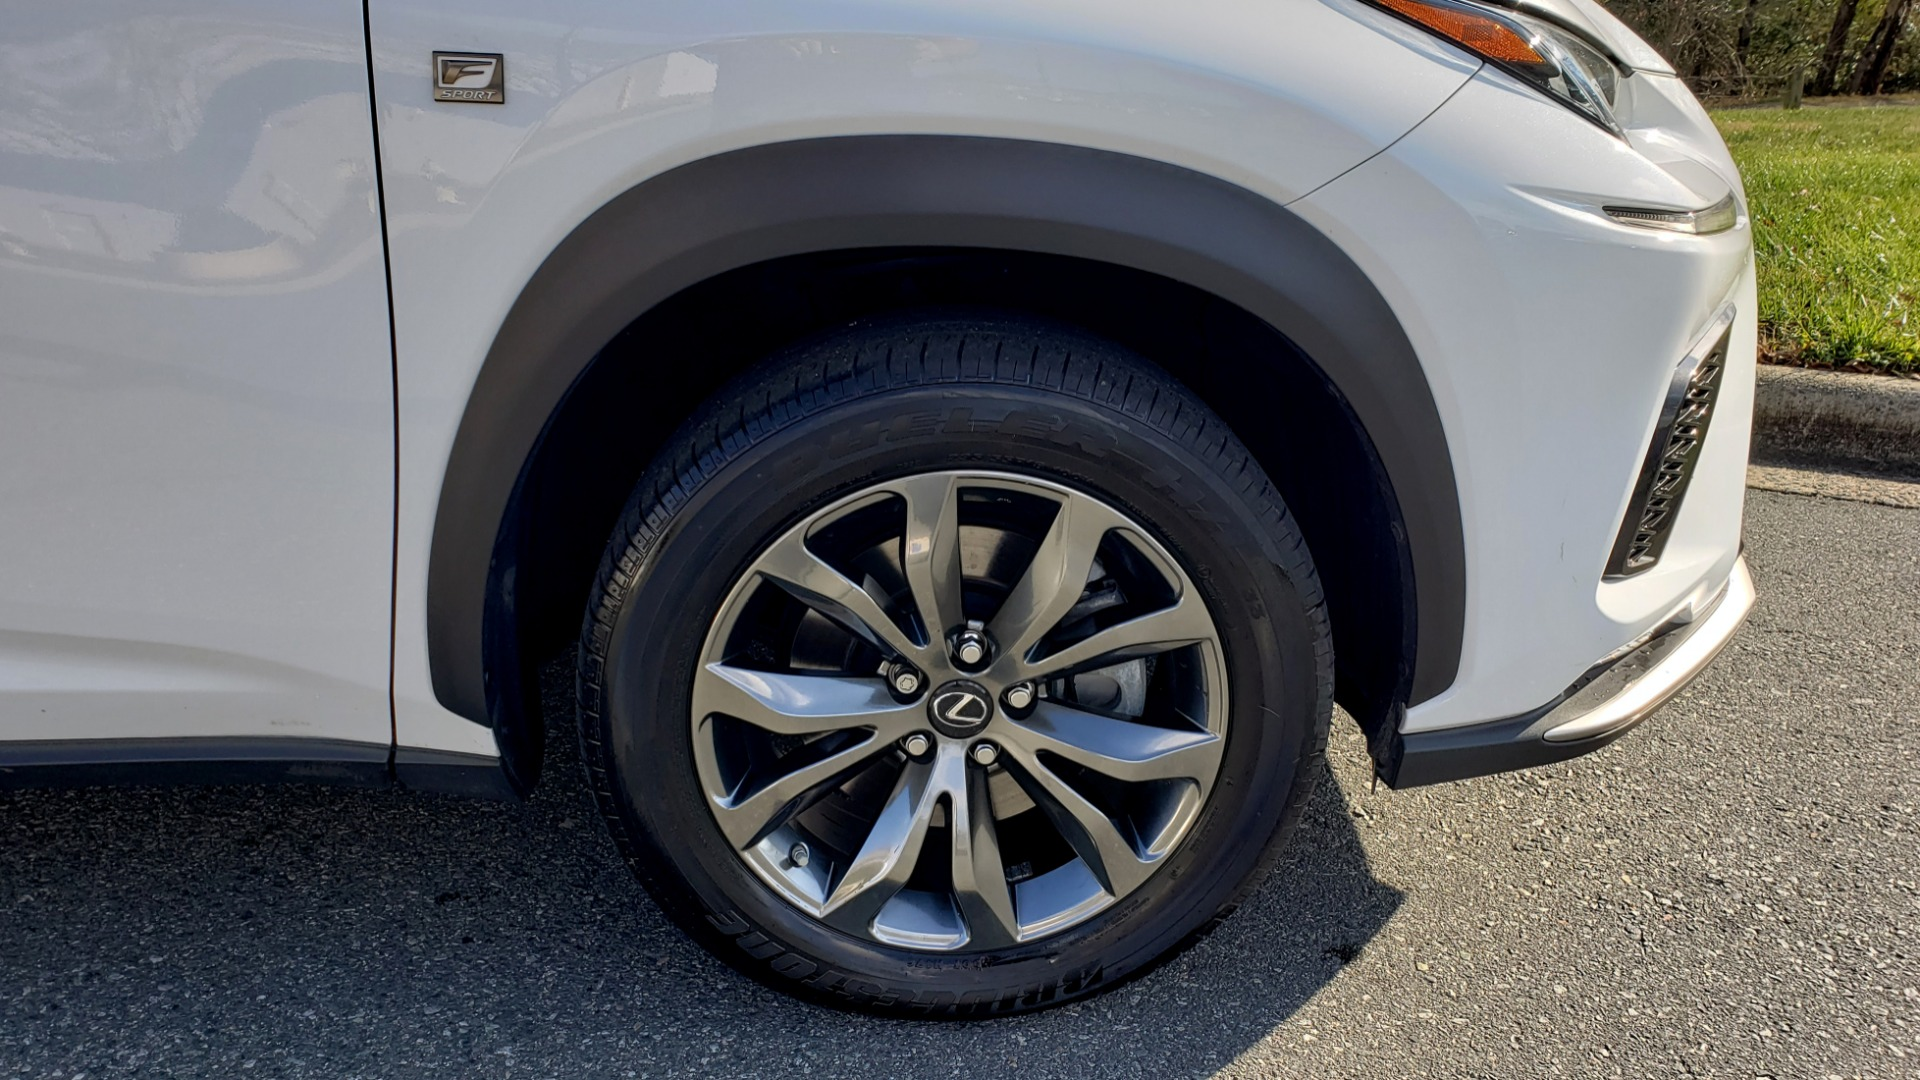 Used 2019 Lexus NX 300 F-SPORT / 2.0L TURBO / LEATHER / 18IN WHEELS / REARVIEW for sale Sold at Formula Imports in Charlotte NC 28227 85